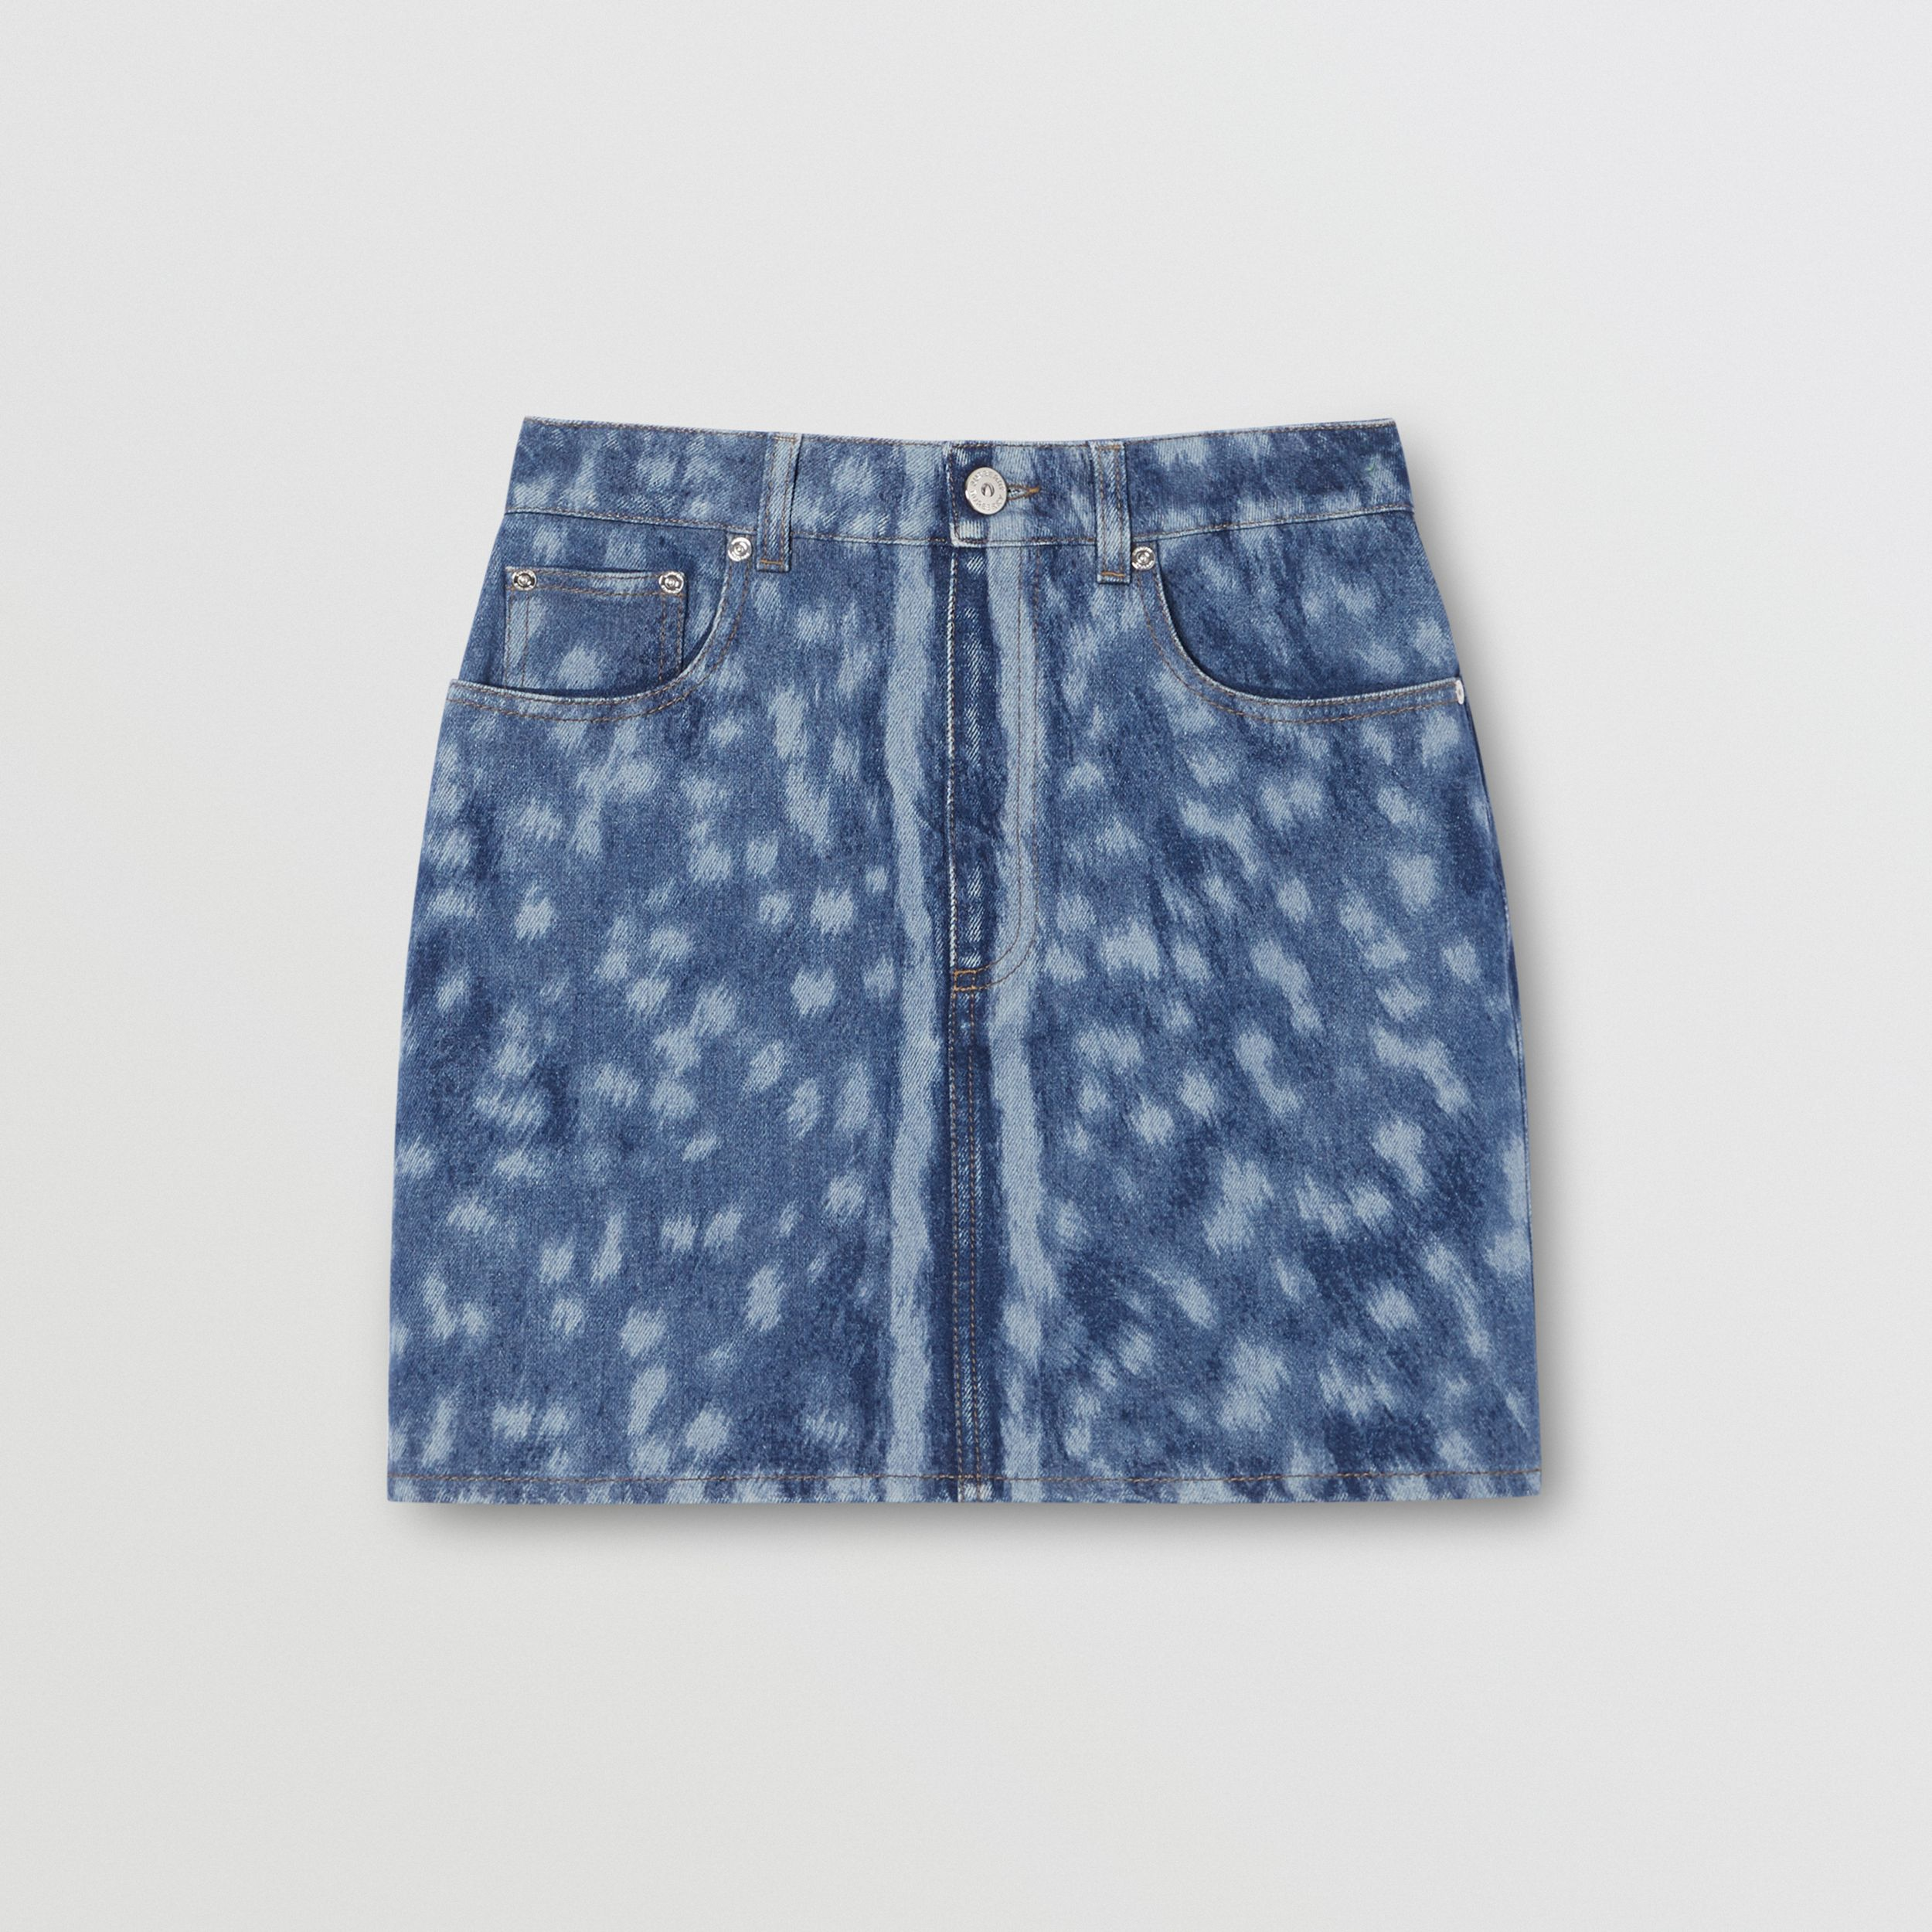 Deer Print Denim Mini Skirt in Mid Indigo - Women | Burberry Canada - 4